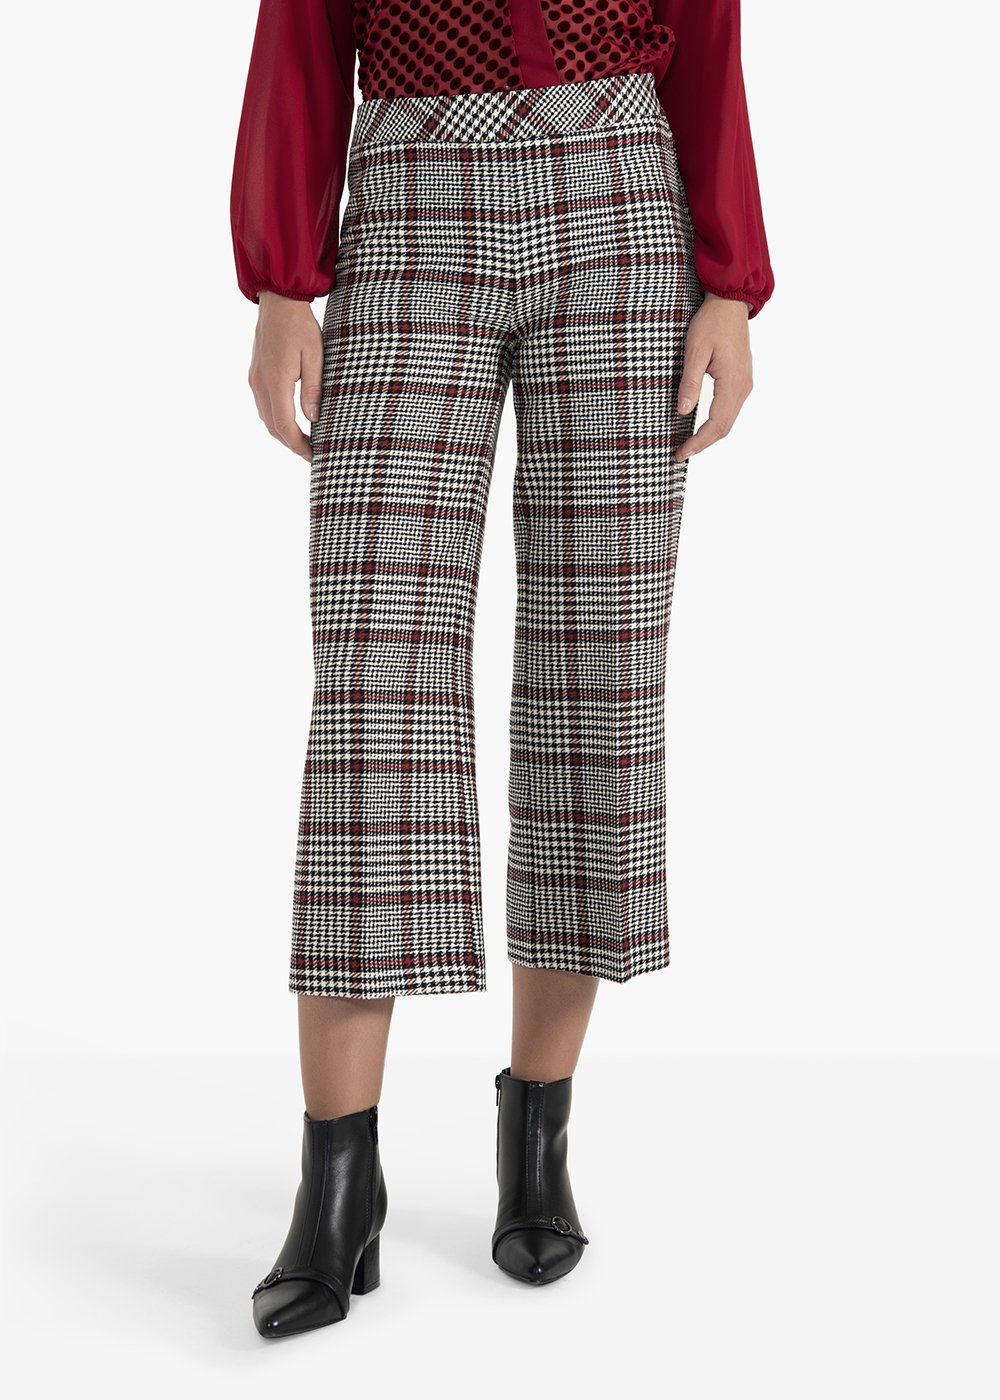 Megan model trousers Plinio in check fabric - White / Black Fantasia - Woman